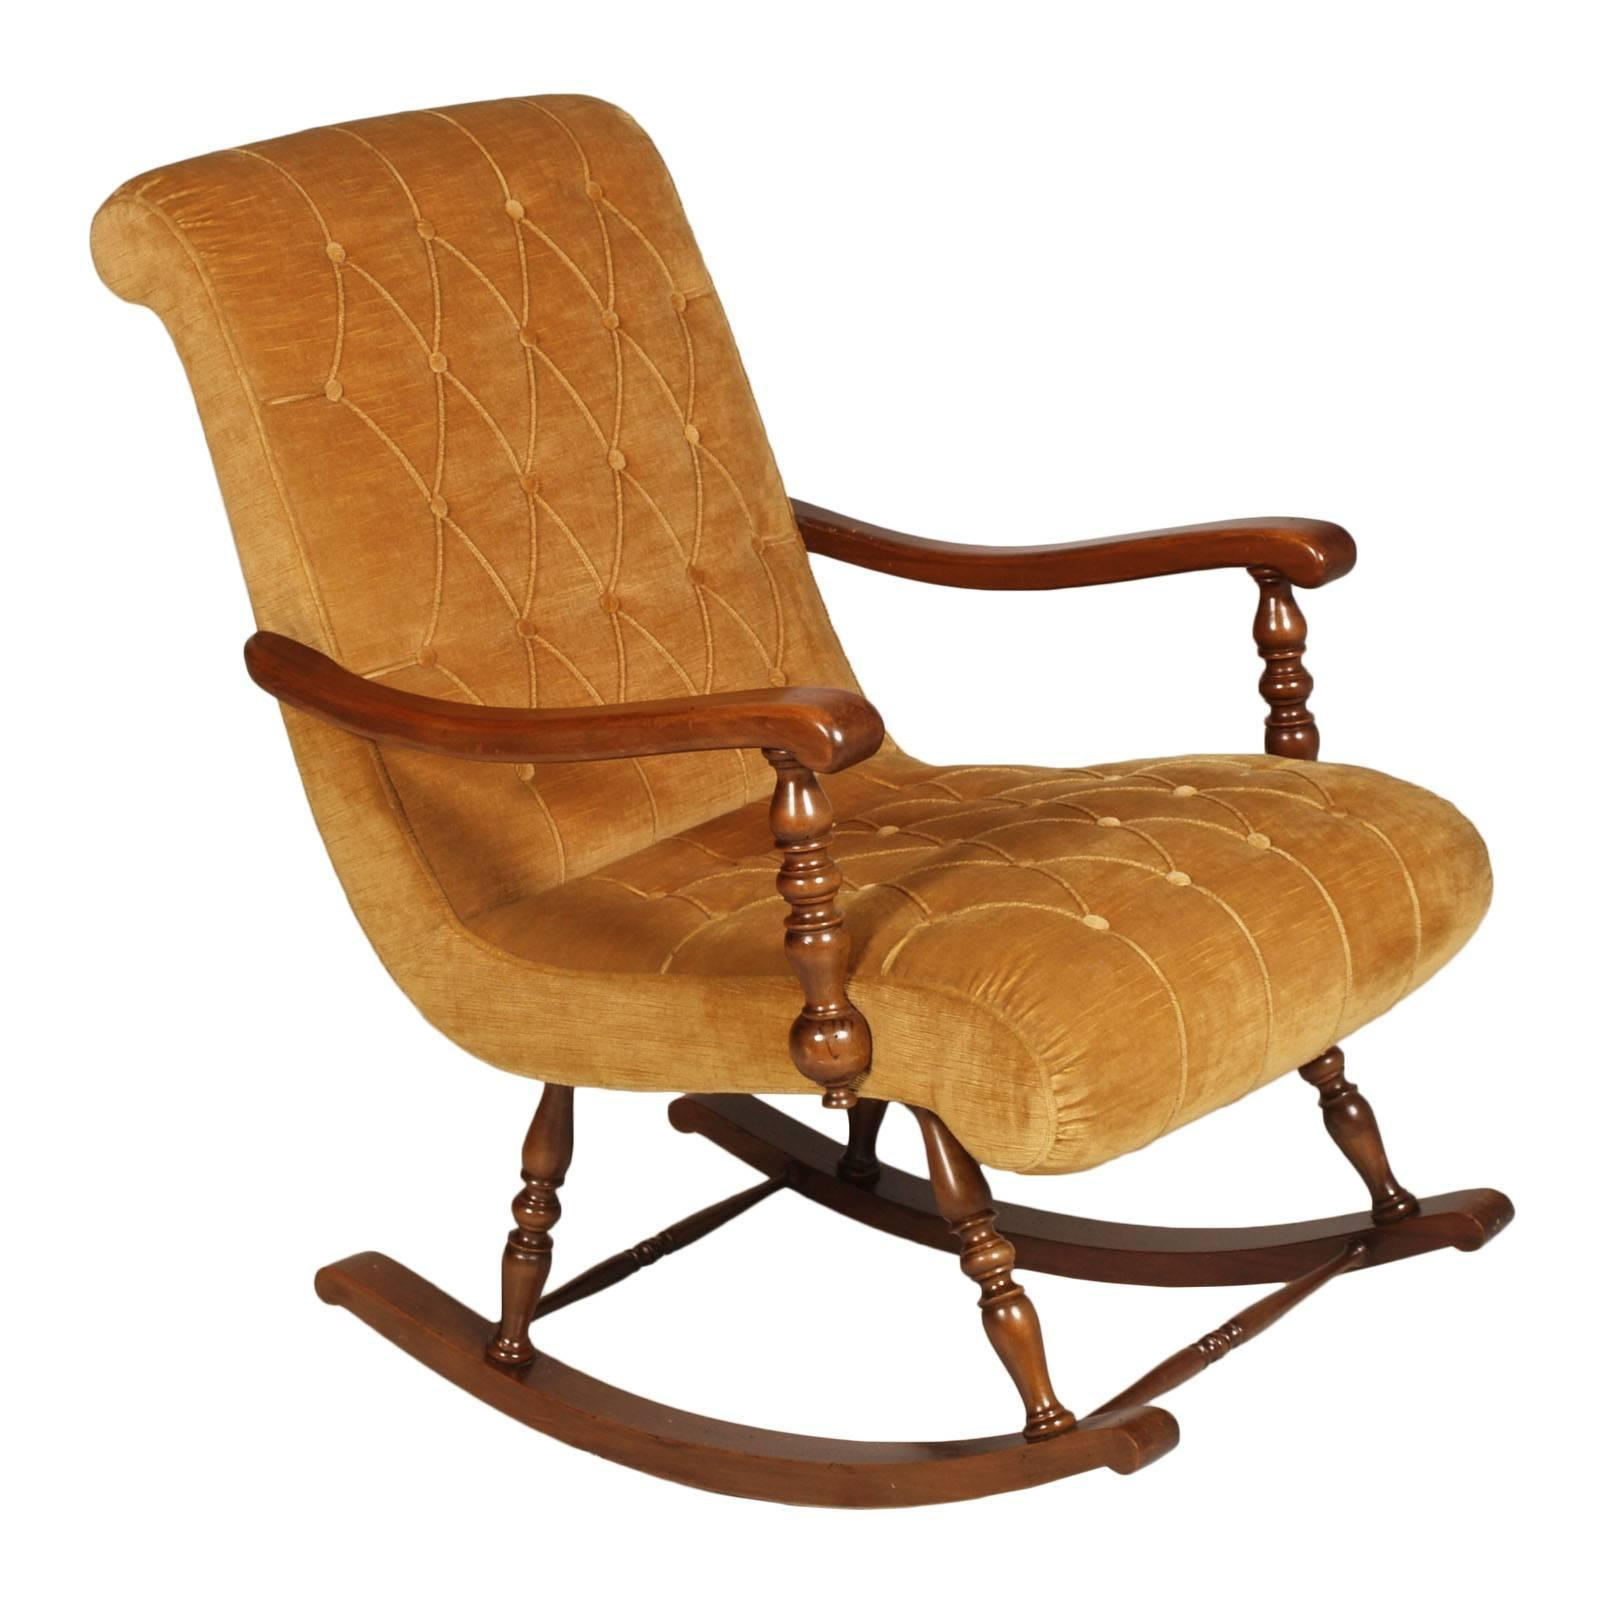 Phenomenal Midcentury Modern Velvet Capitone Italian Original Rocking Chair In Walnut Frame Gmtry Best Dining Table And Chair Ideas Images Gmtryco